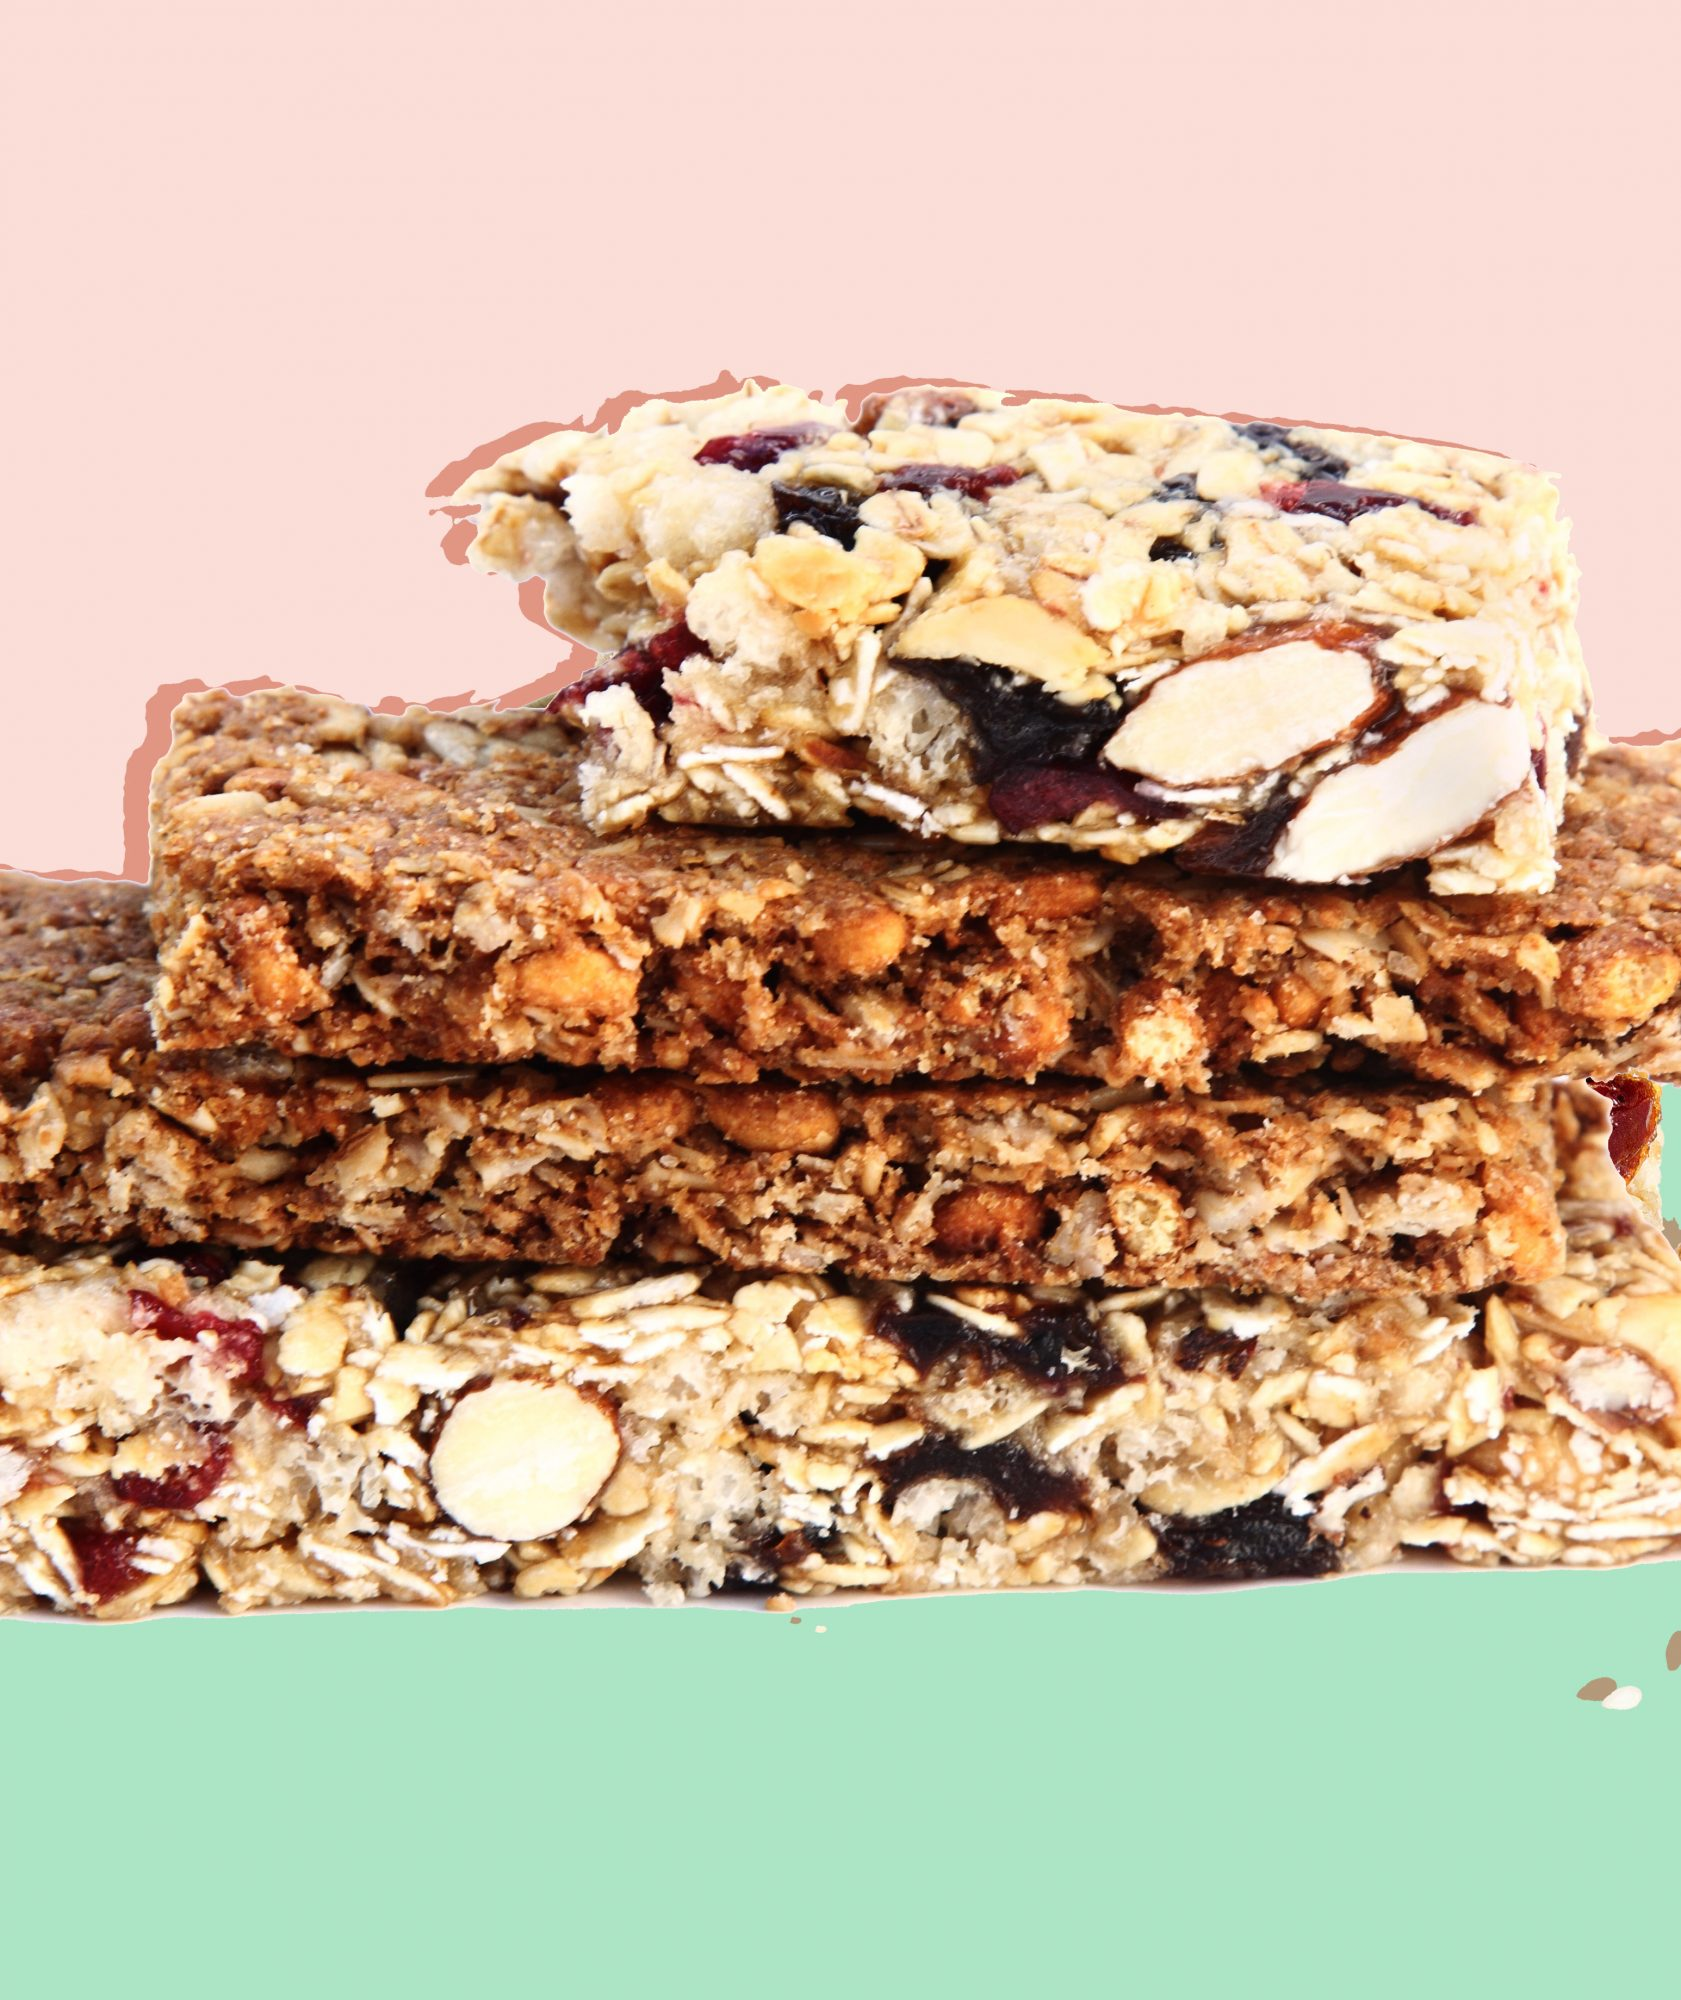 We Tried All of the Snack Bars From Trader Joe's—Here Are Our Top 5